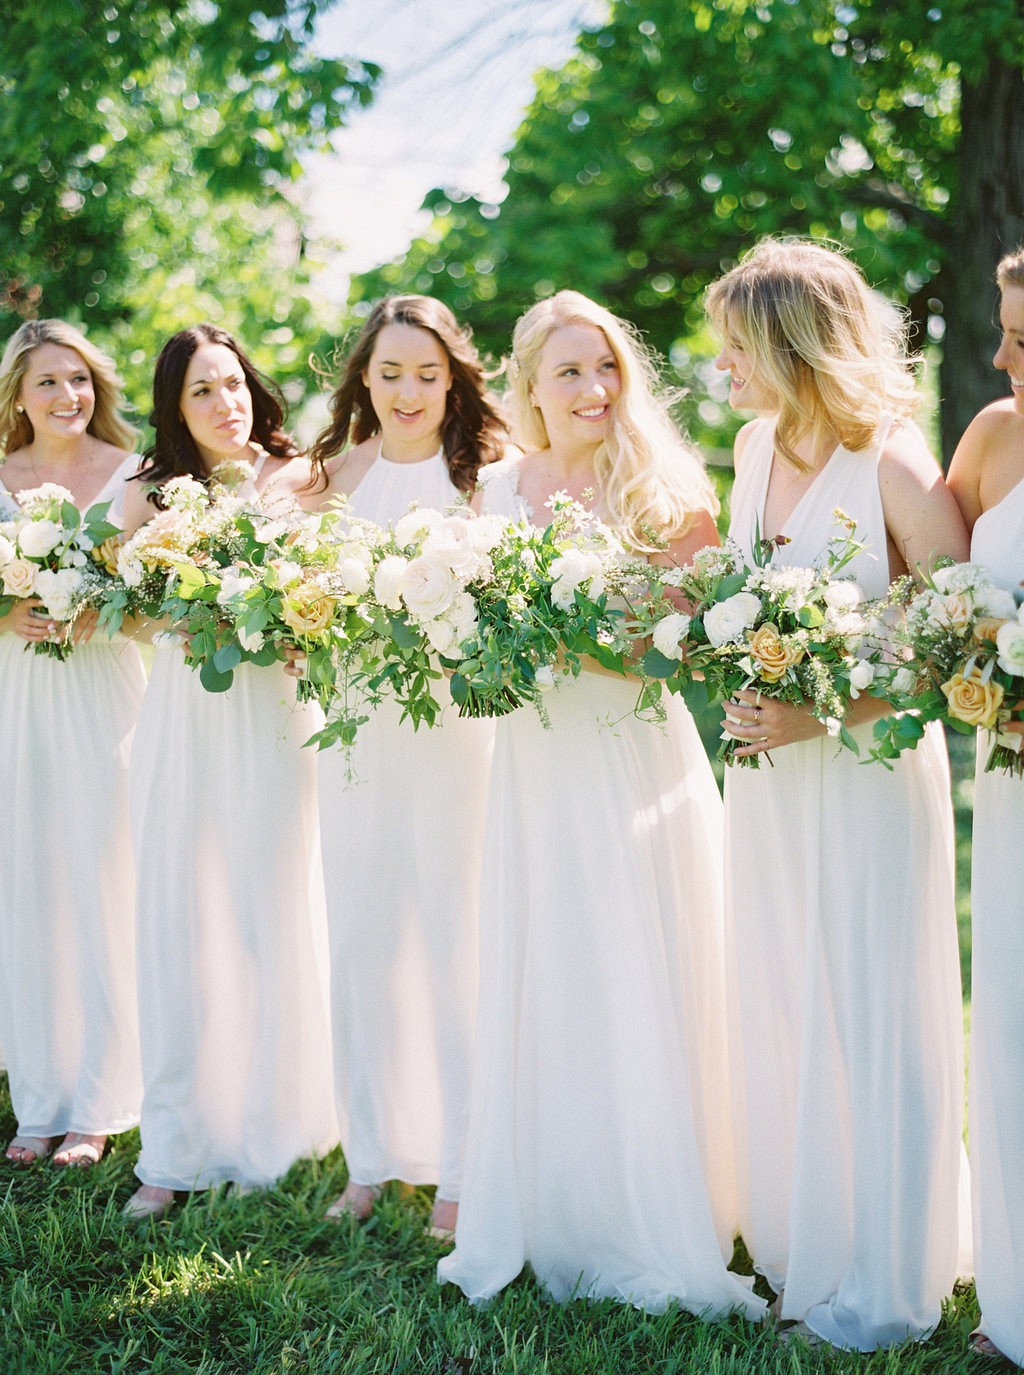 Bridesmaids in white | Heartfelt and Nostalgic Indiana Barn Wedding by Renee Lemaire | Wedding Sparrow fine art wedding blog